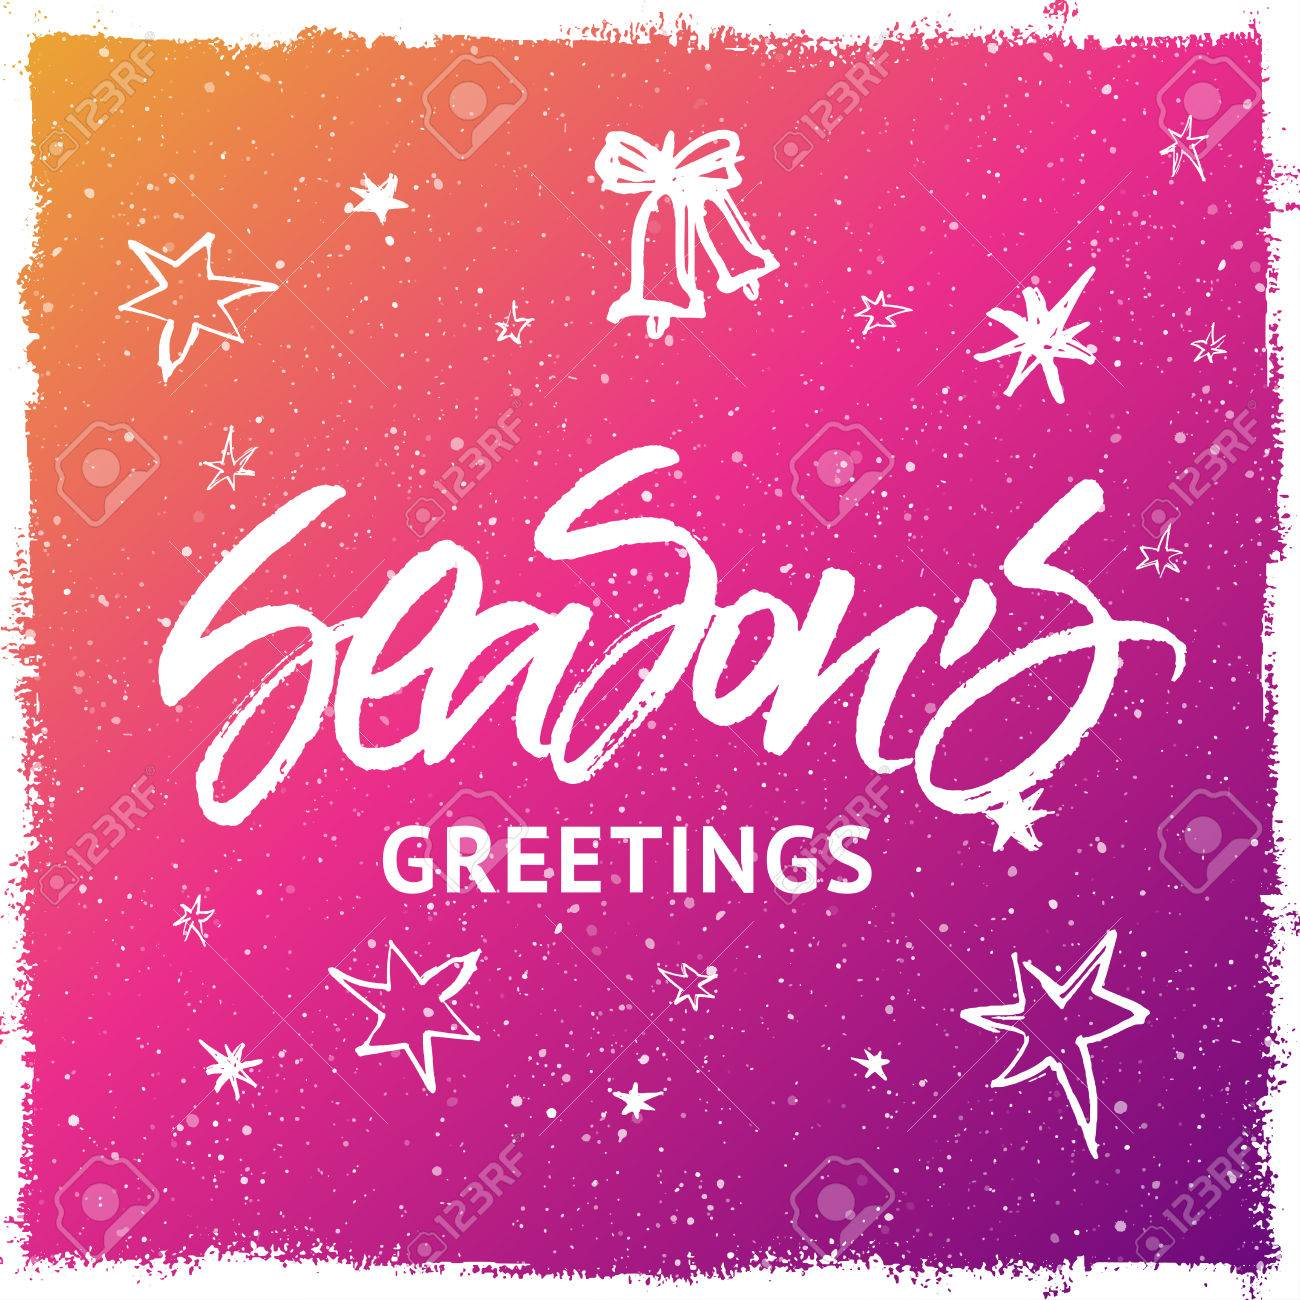 seasons greetings christmas and new year greeting card handwritten brush lettering colorful purple and